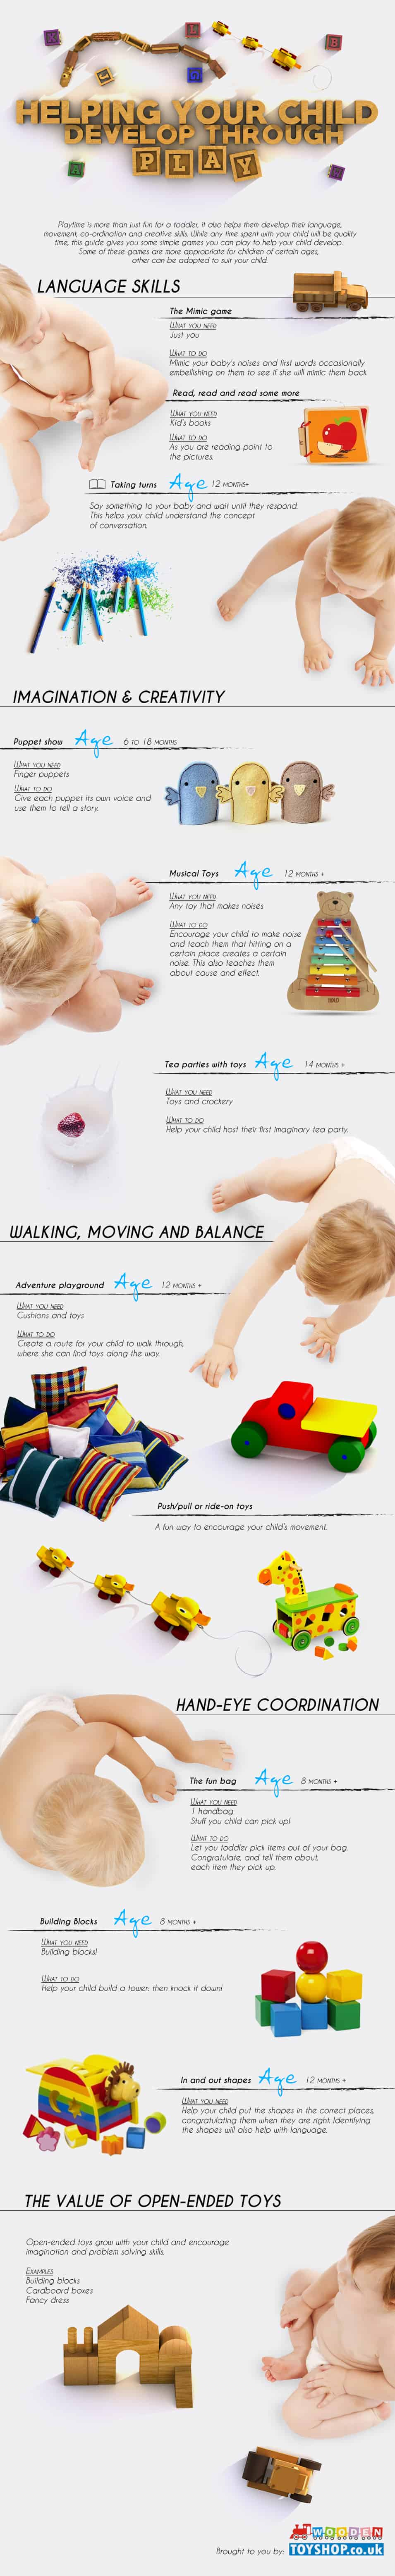 helping-your-child-develop-through-play